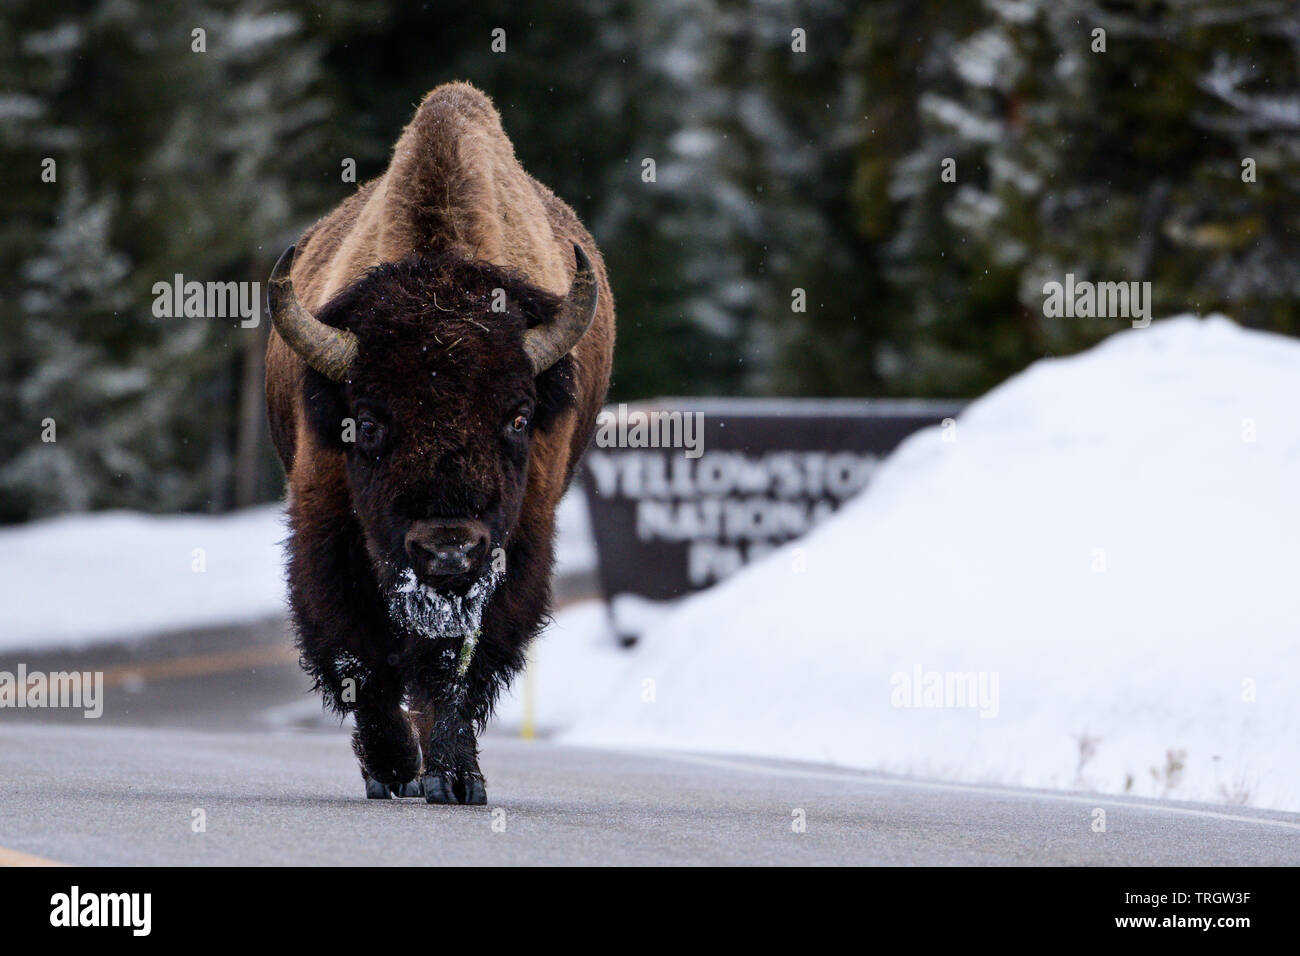 Buffalo own the streets in Yellowstone National Park, Wyoming, North America. - Stock Image